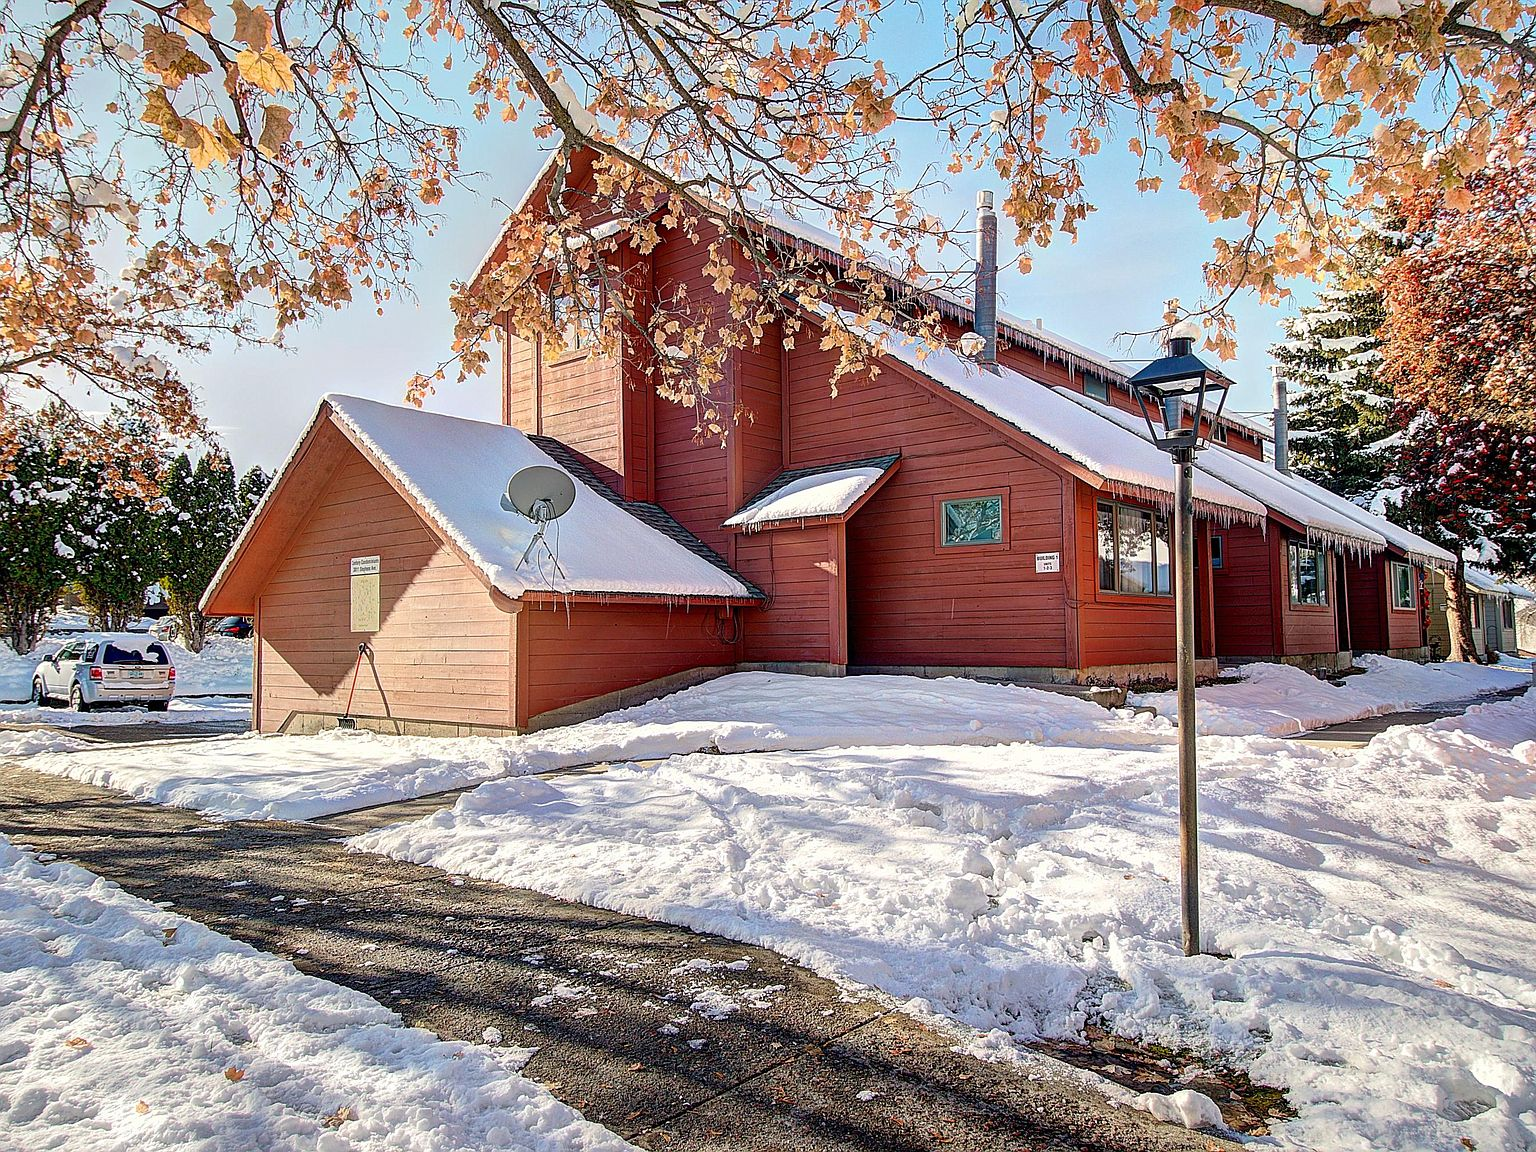 3811 Stephens Ave S Unit 2 Missoula Mt 59801 Zillow See more of missoula international airport on facebook. zillow